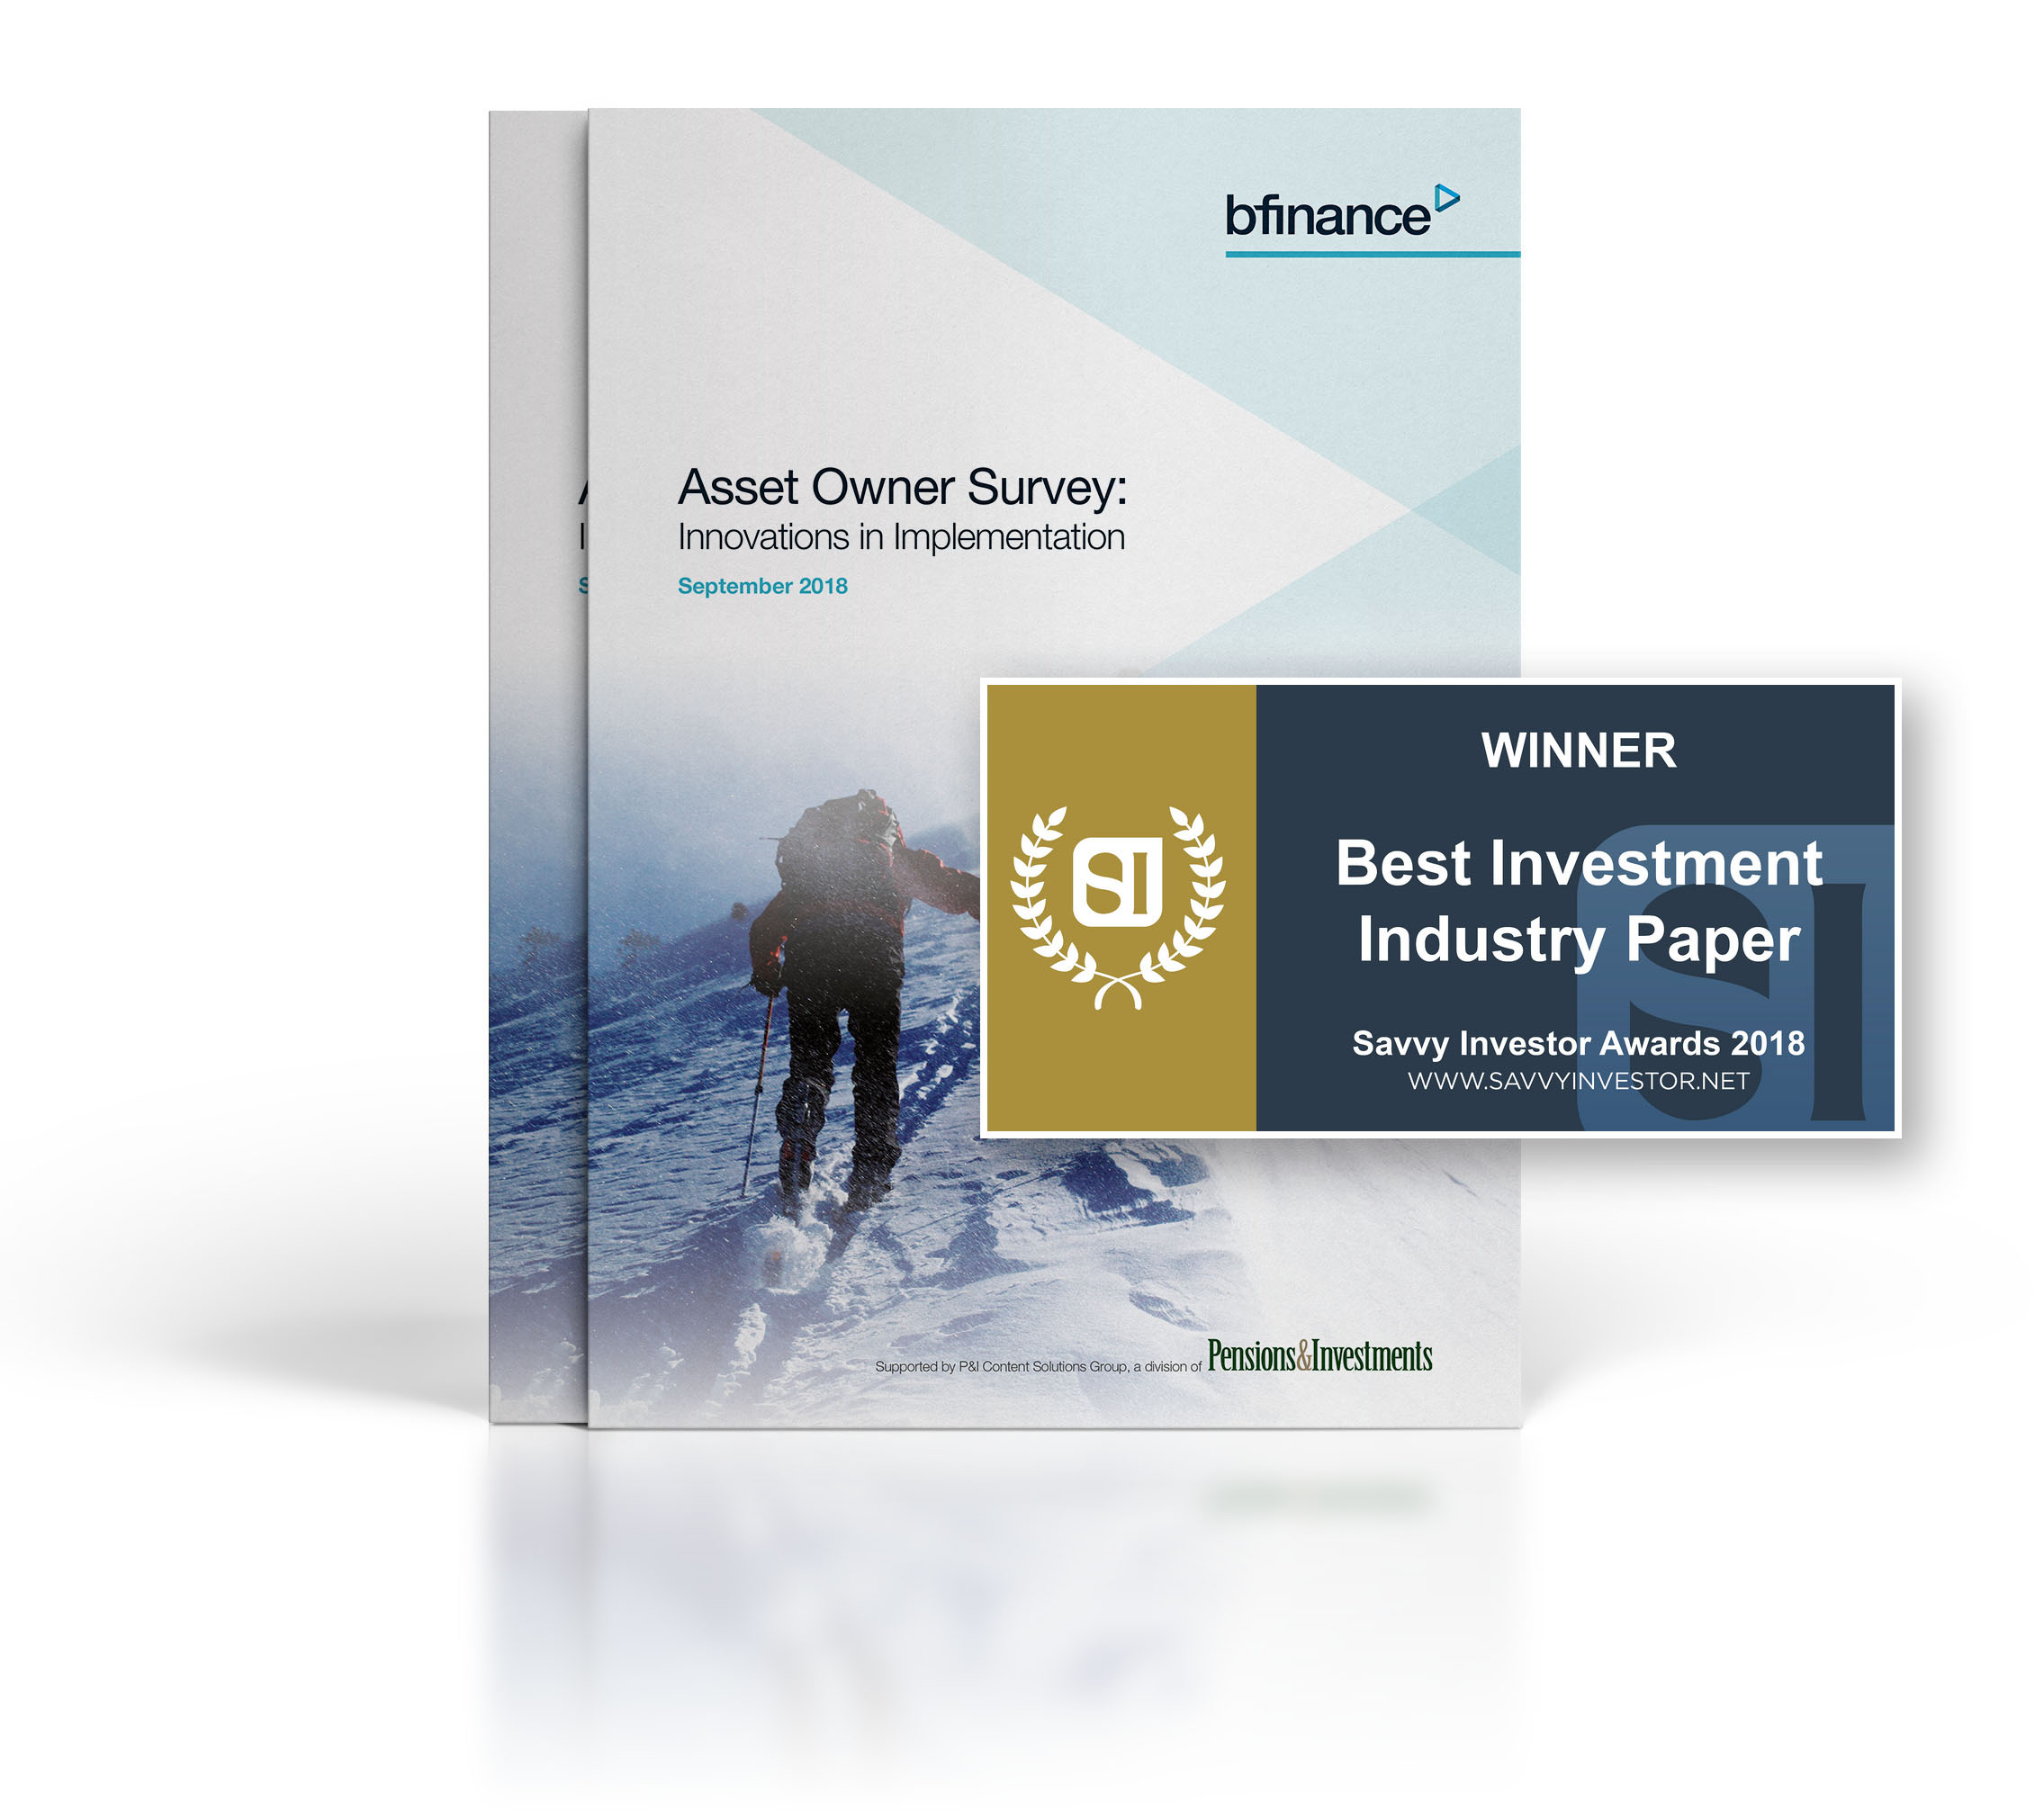 bfinance Asset Owner Report 2018